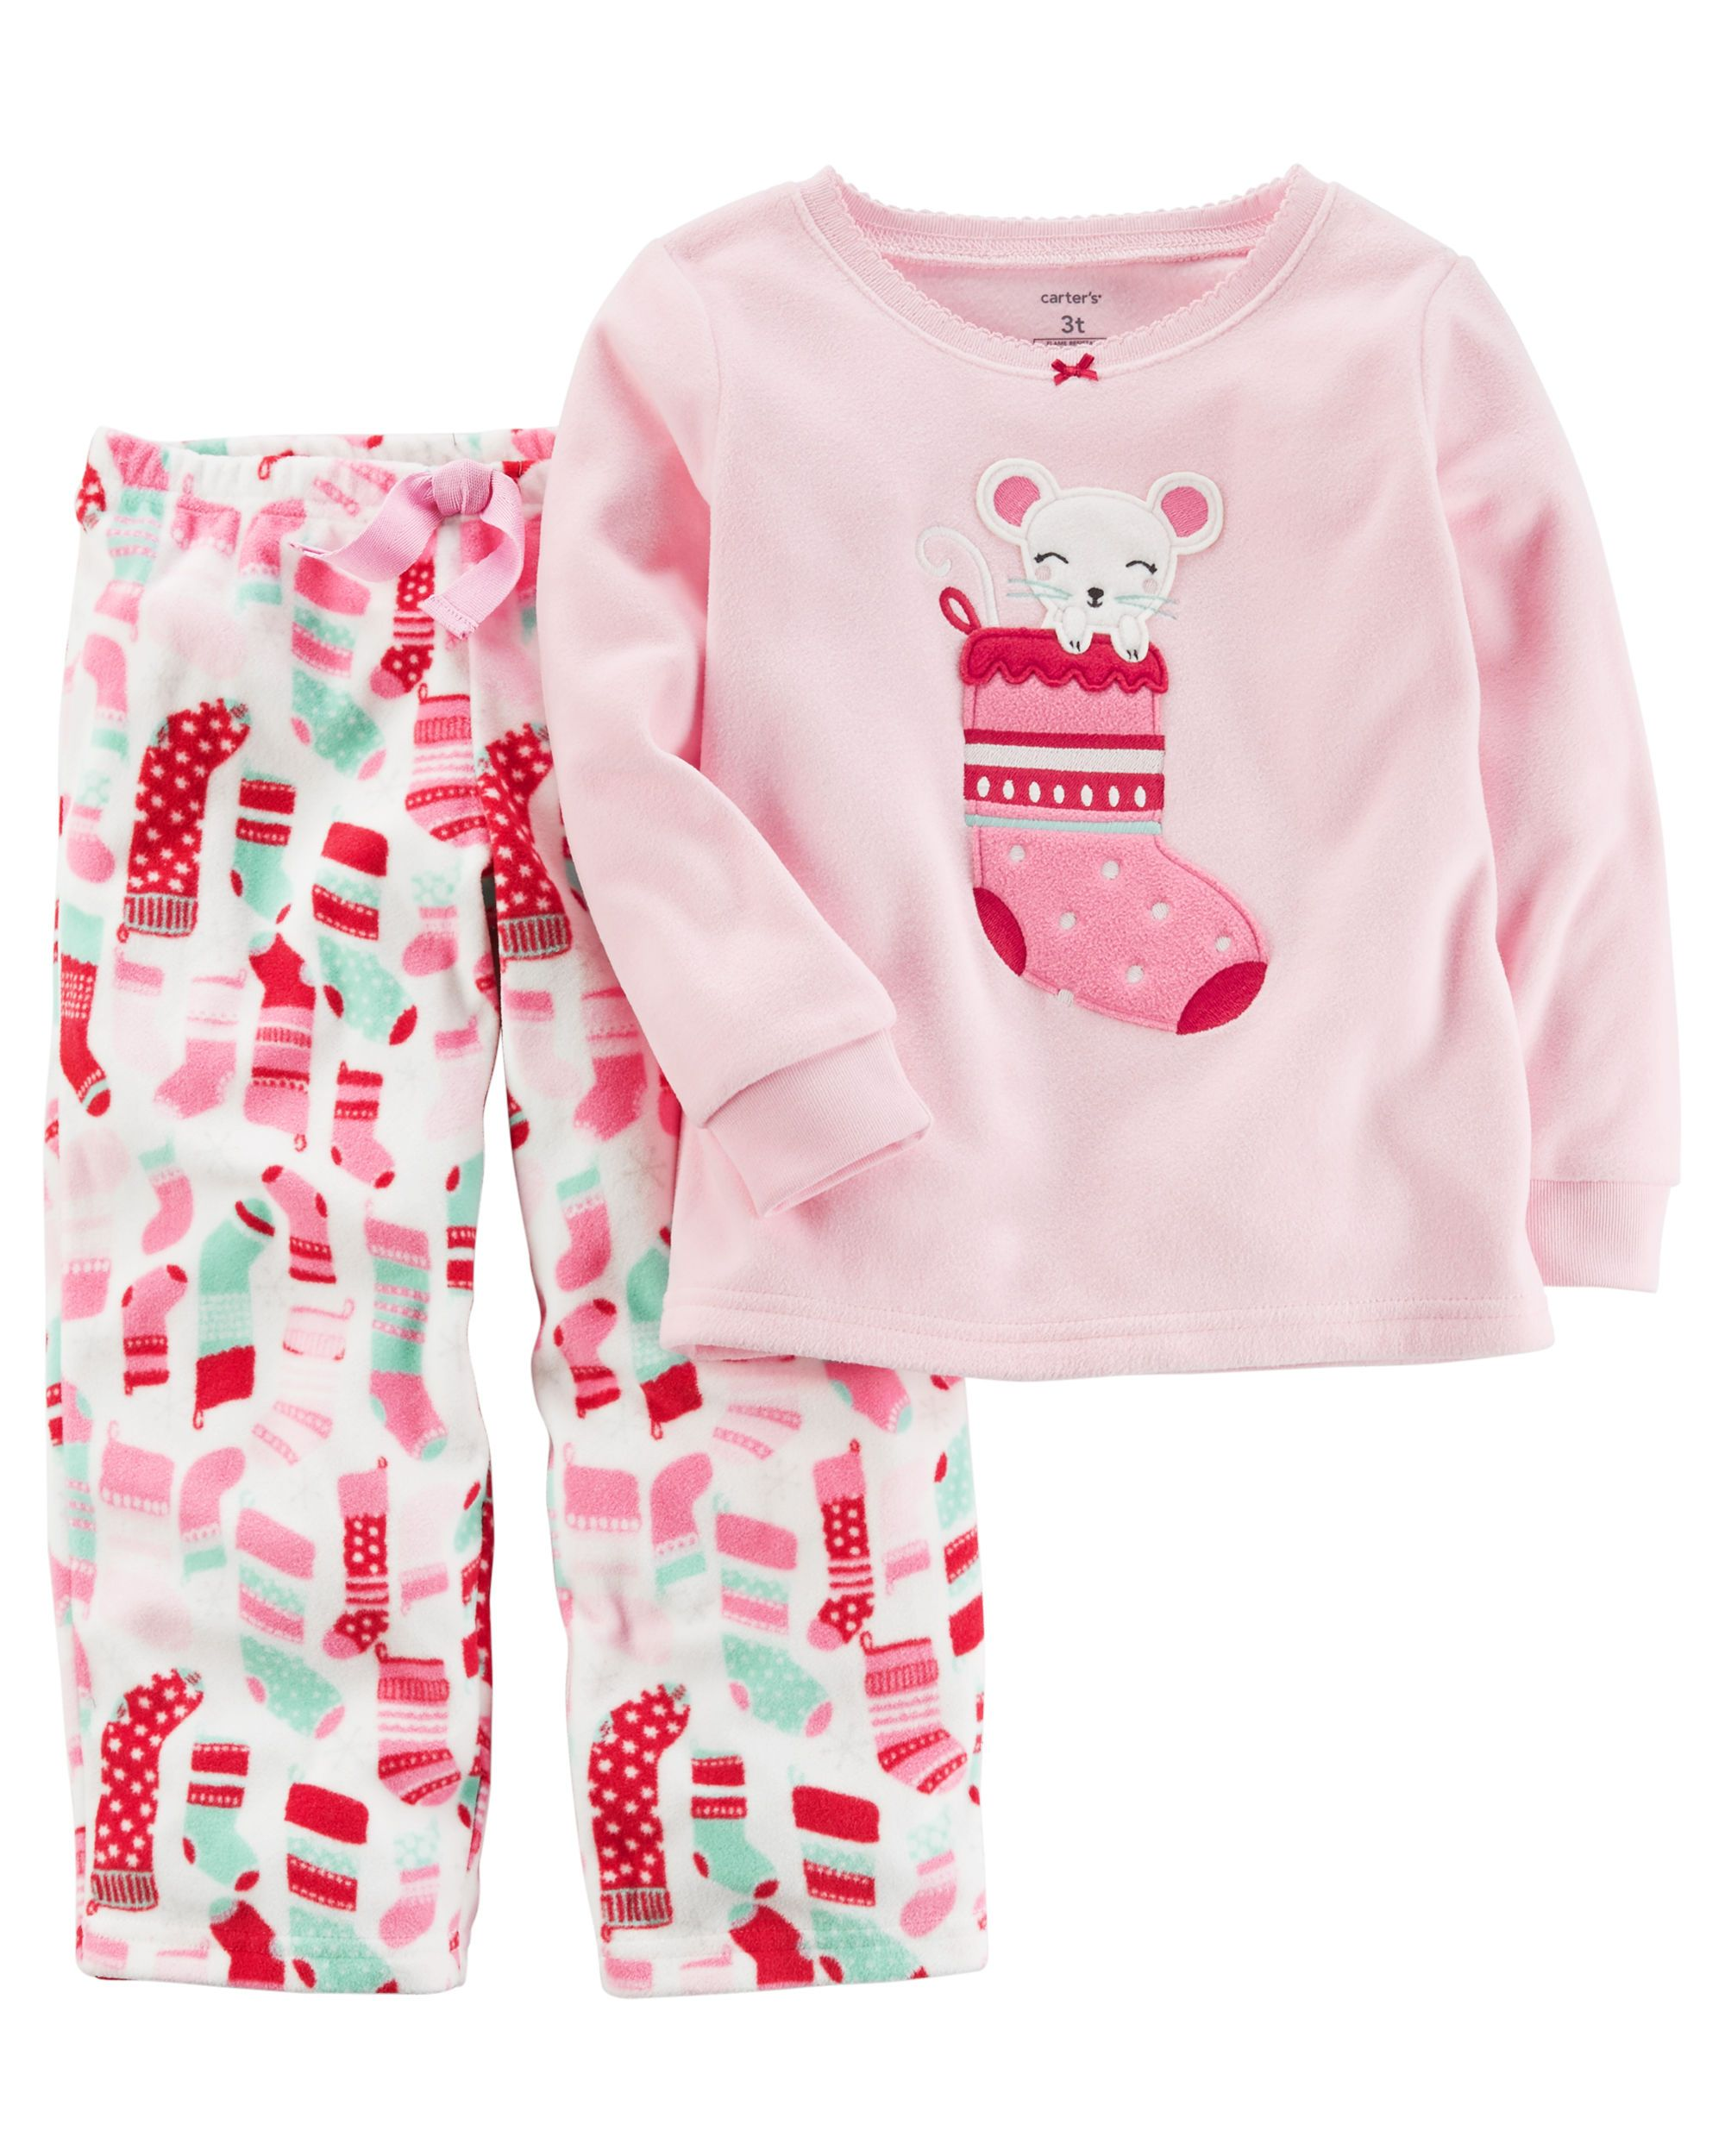 4-Piece Christmas Fleece PJs  Baby girl clothes winter, Toddler